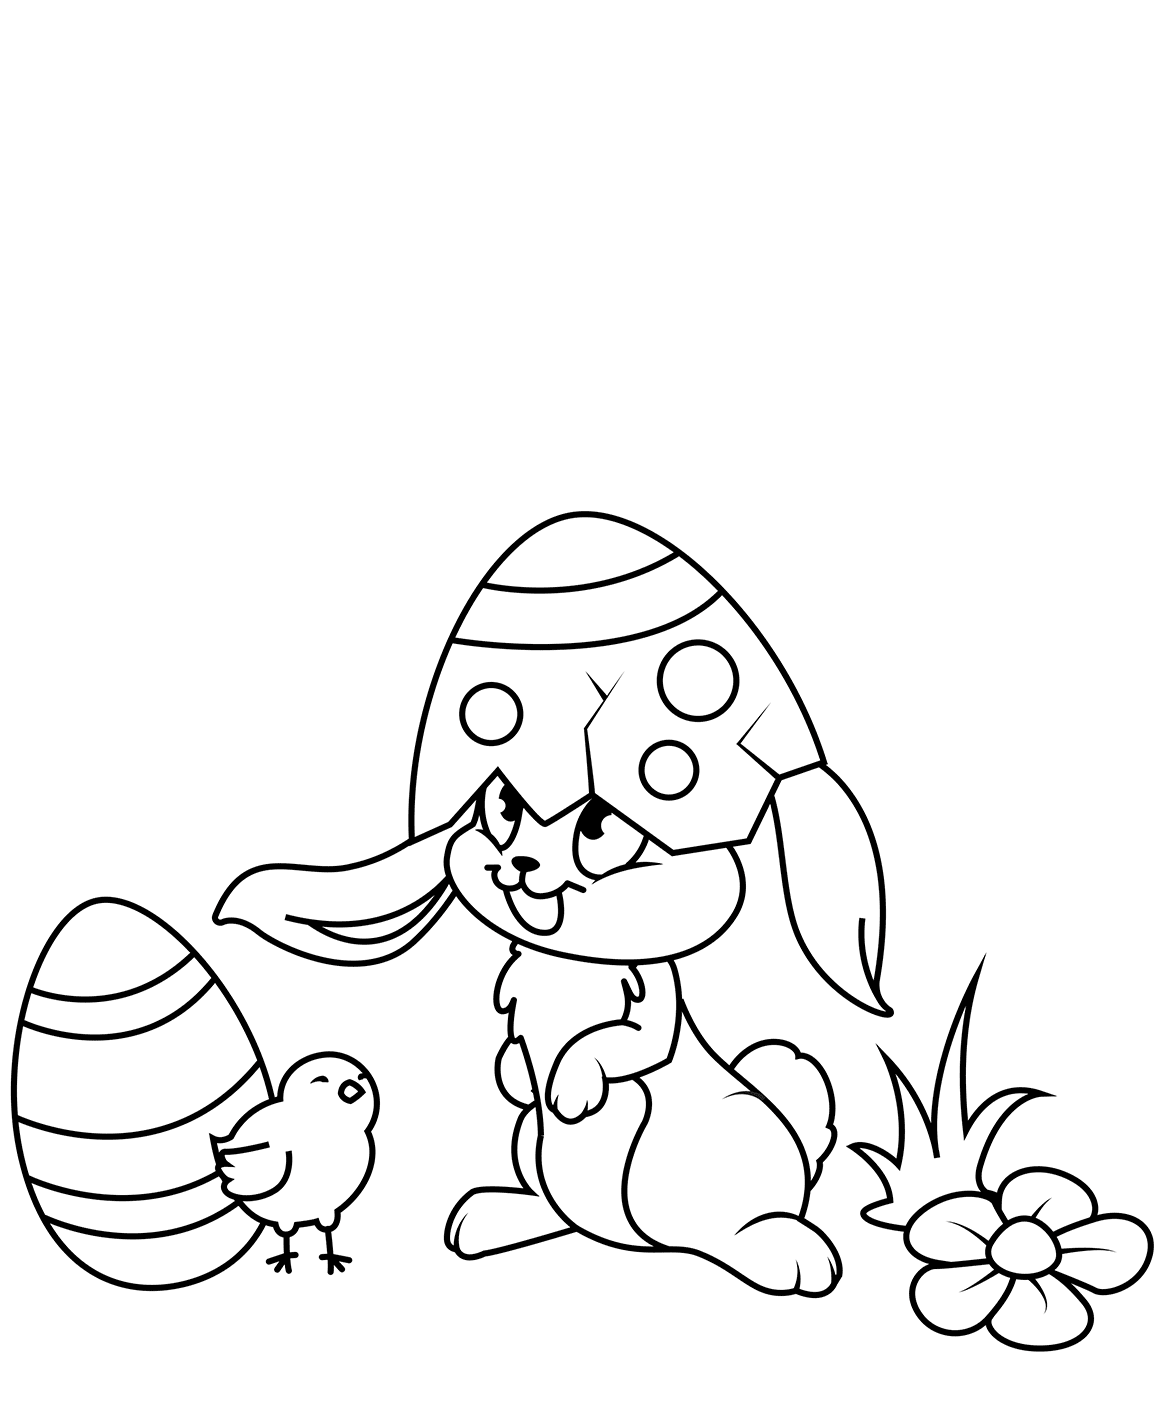 Easter Bunny And Chic Coloring Page